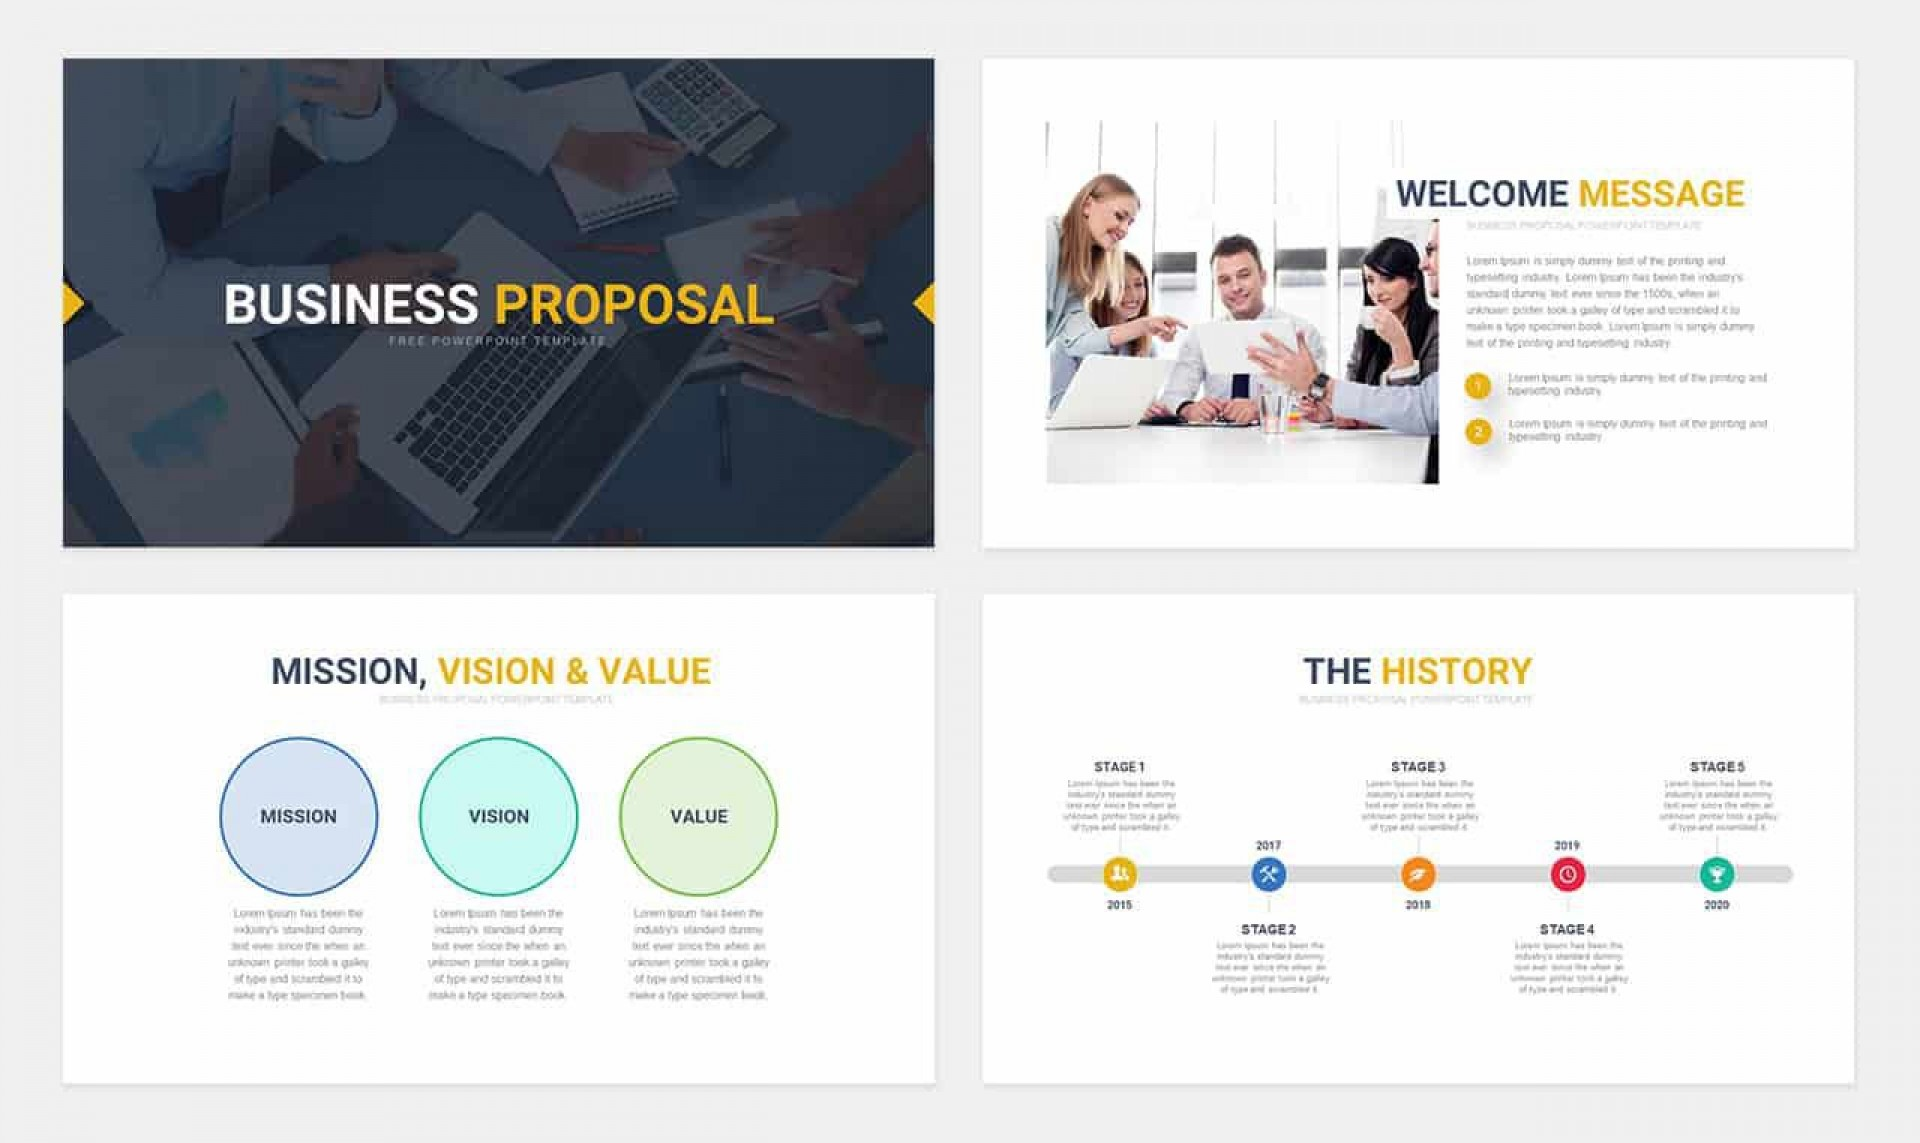 004 Fascinating Free Download Busines Proposal Template Ppt Picture  Best Plan Sample Plan.ppt 20201920